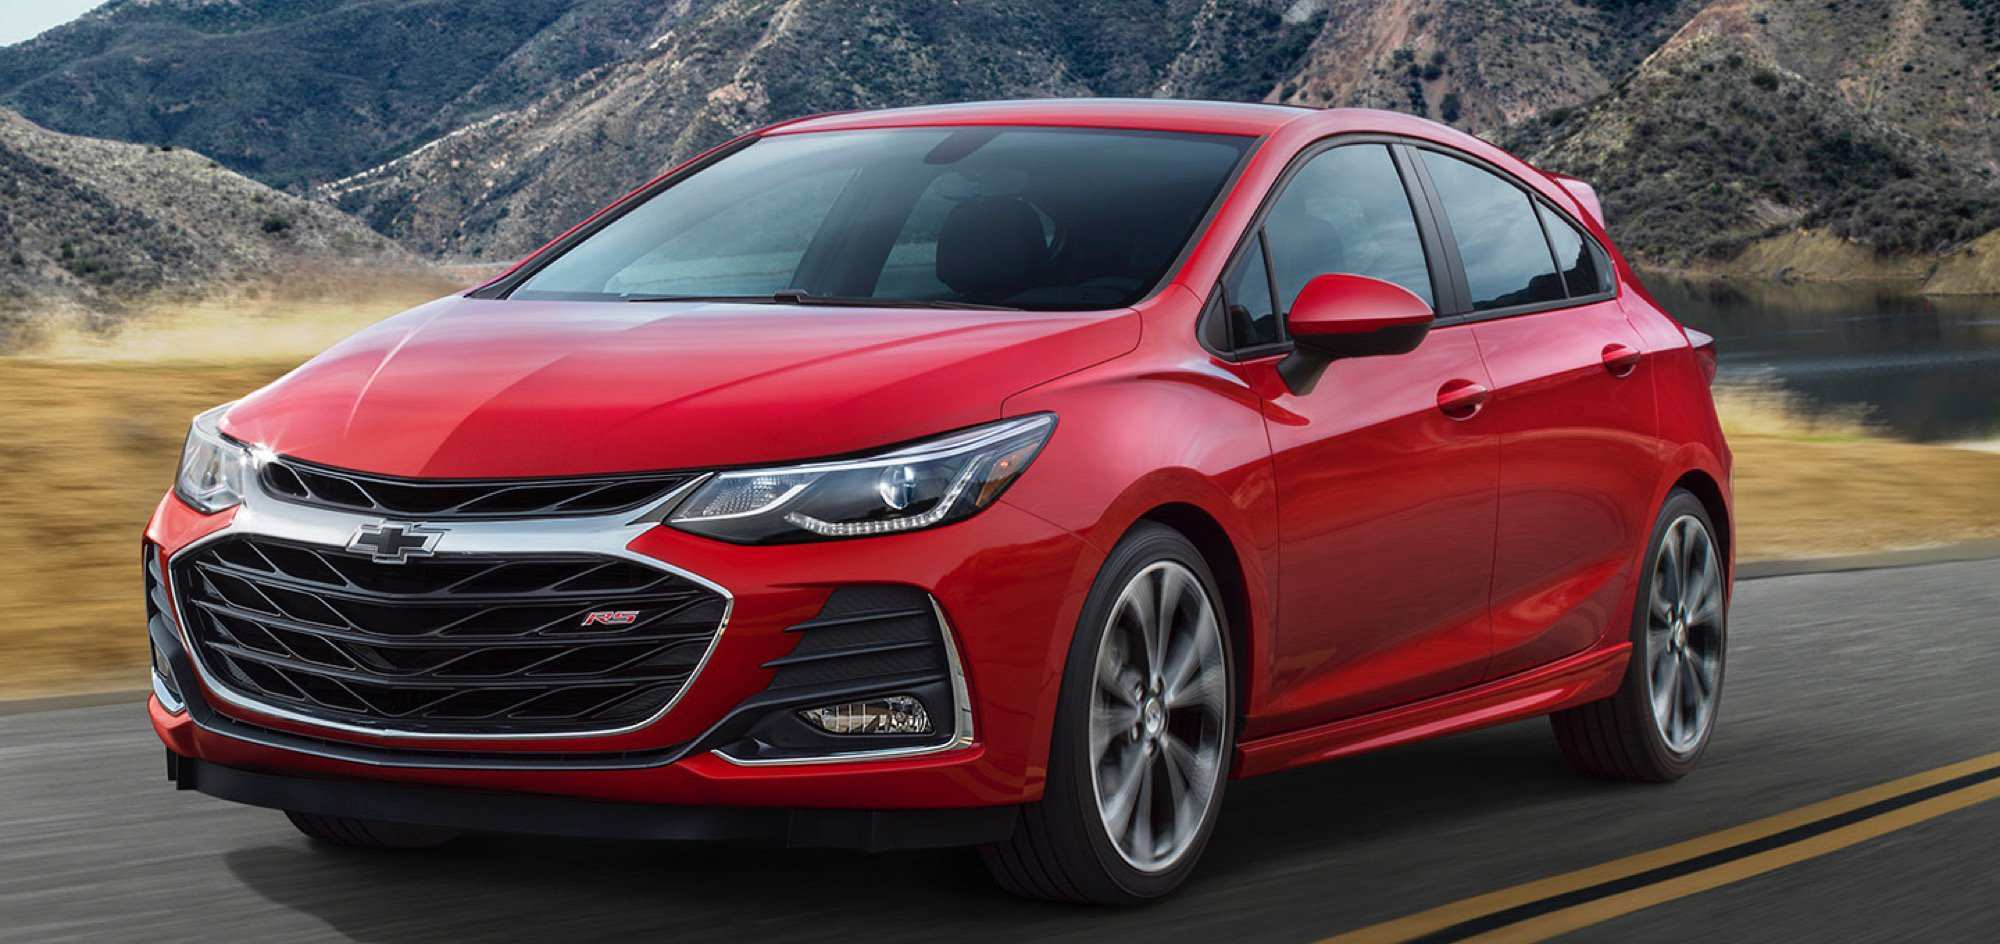 35 The 2020 Chevy Cruze Pictures